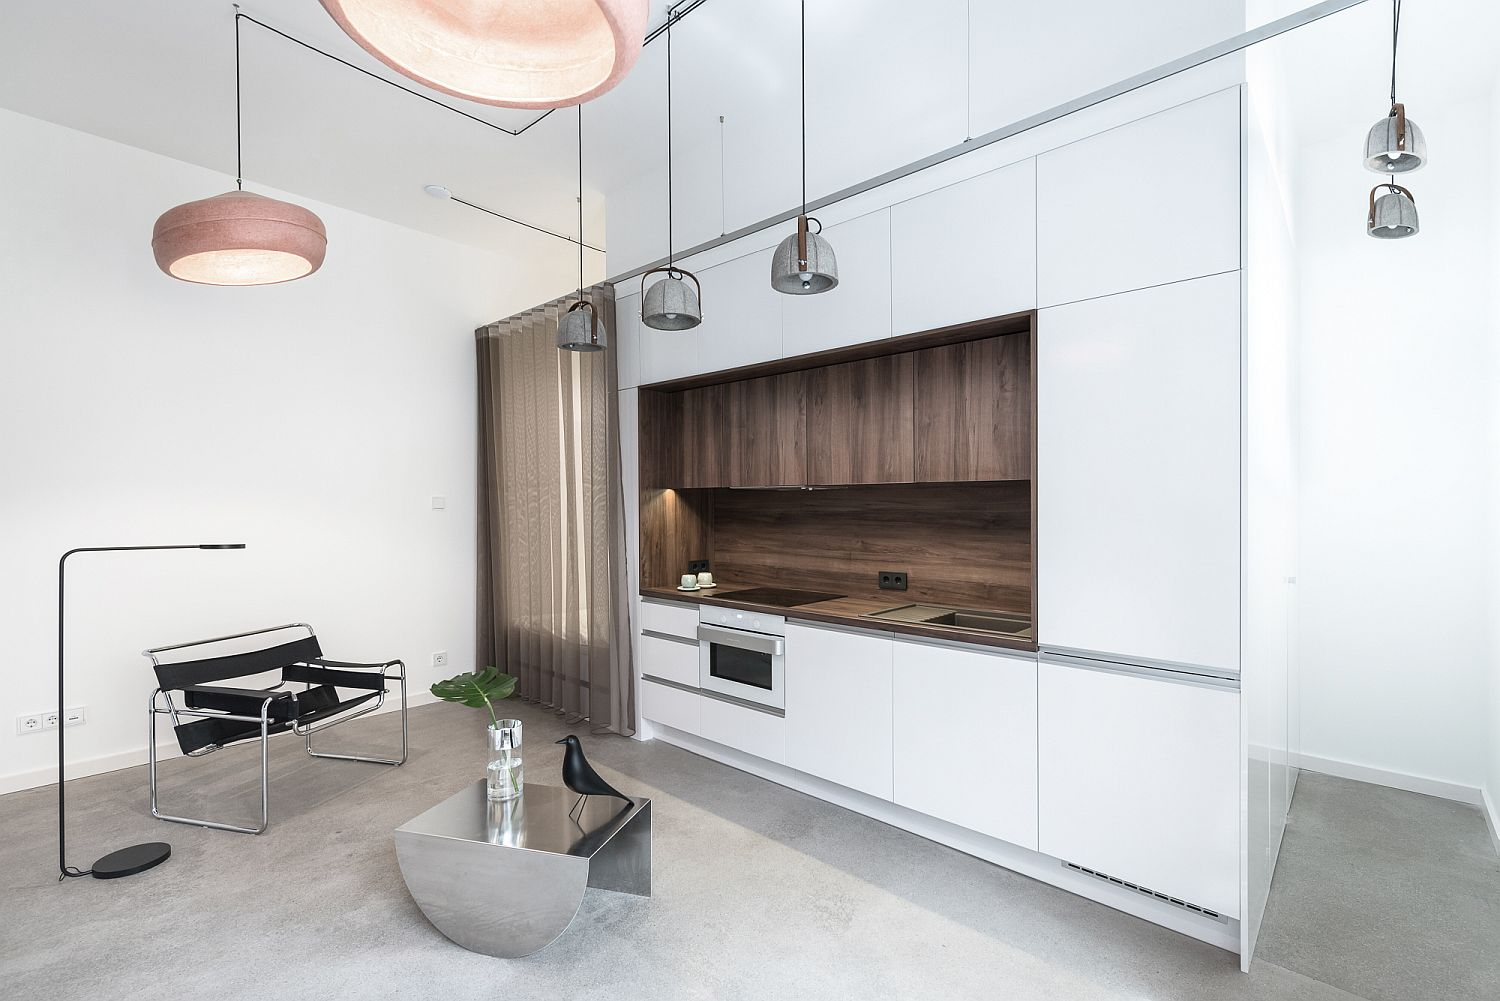 Central kitchen bedroom and bathroom unit defines the tiny apartment